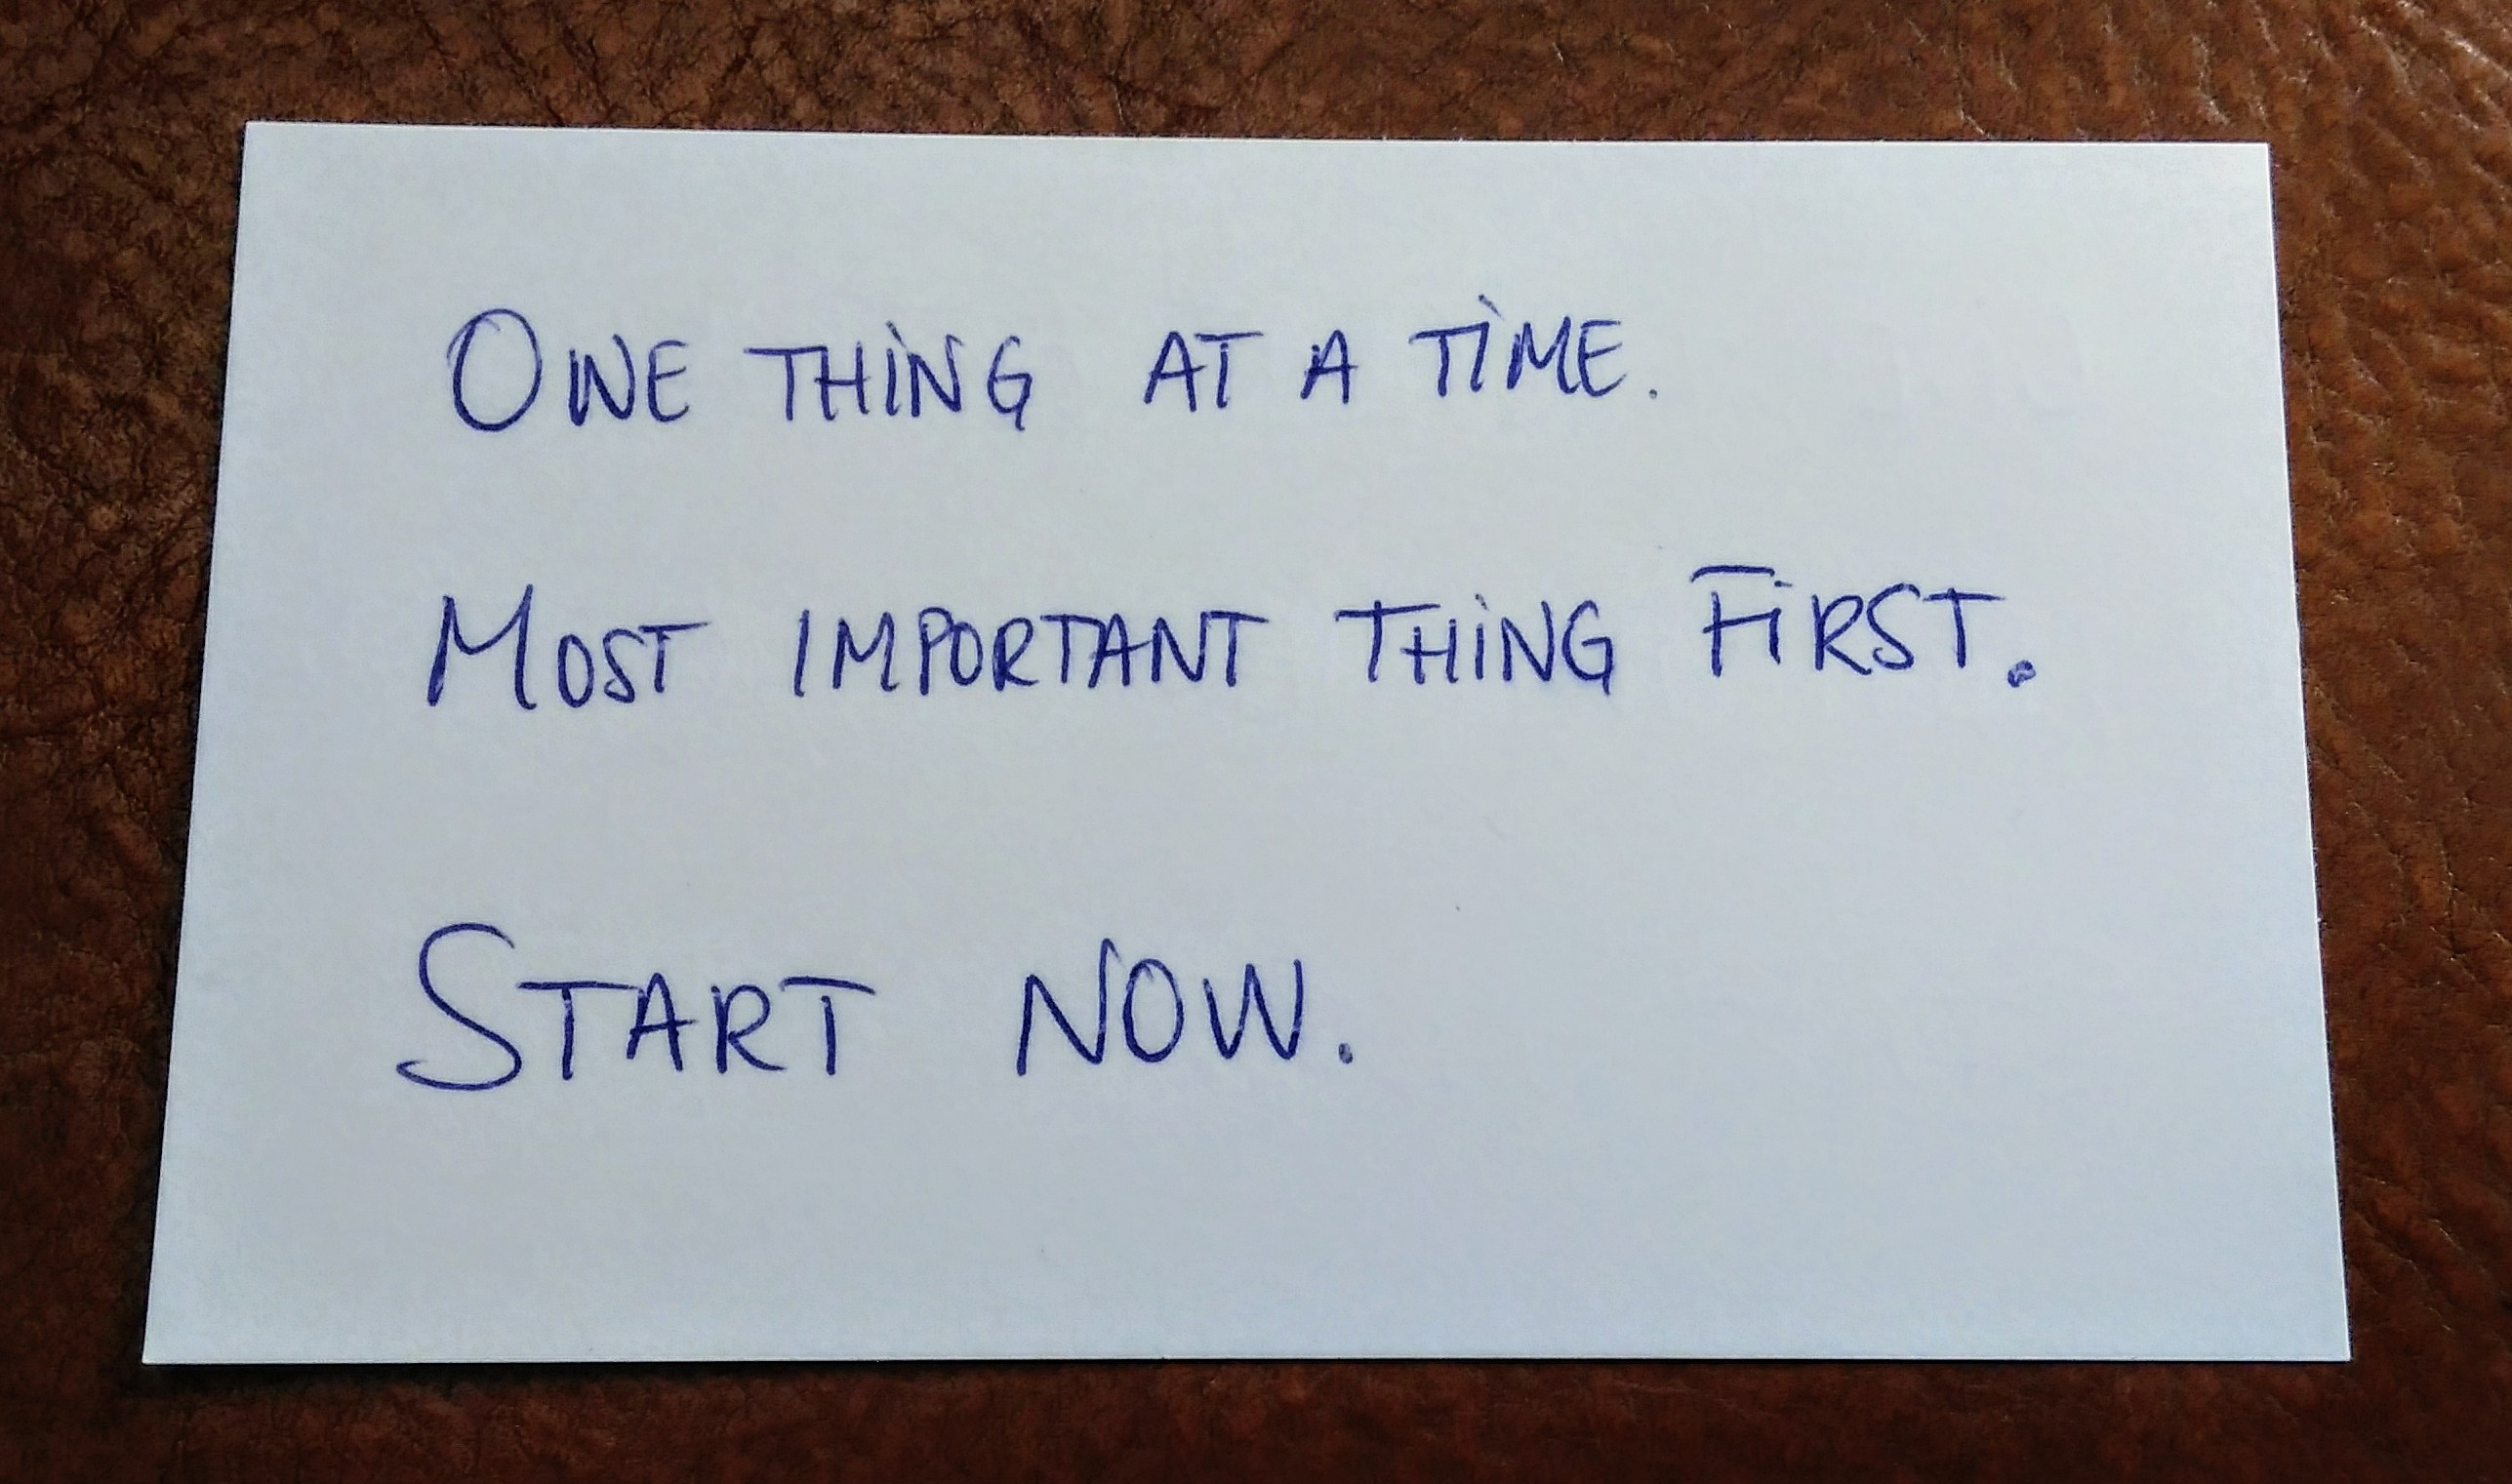 One thing at a time. Most important thing first. Start now.